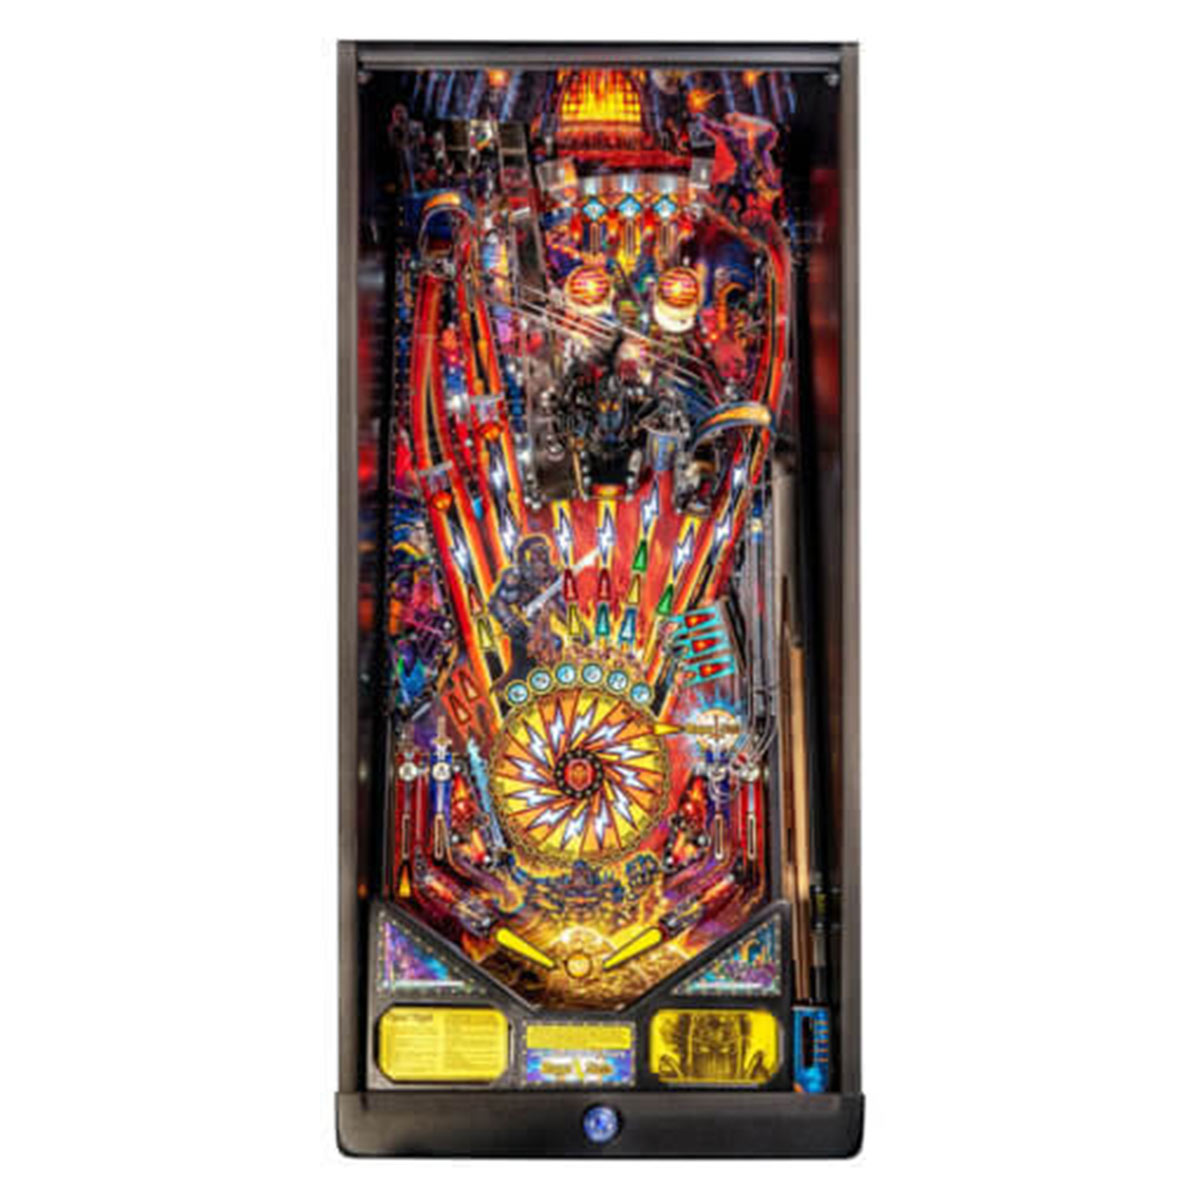 Ultimate Pinball Black Knight - Sword of Rage Pro Pinball Machine